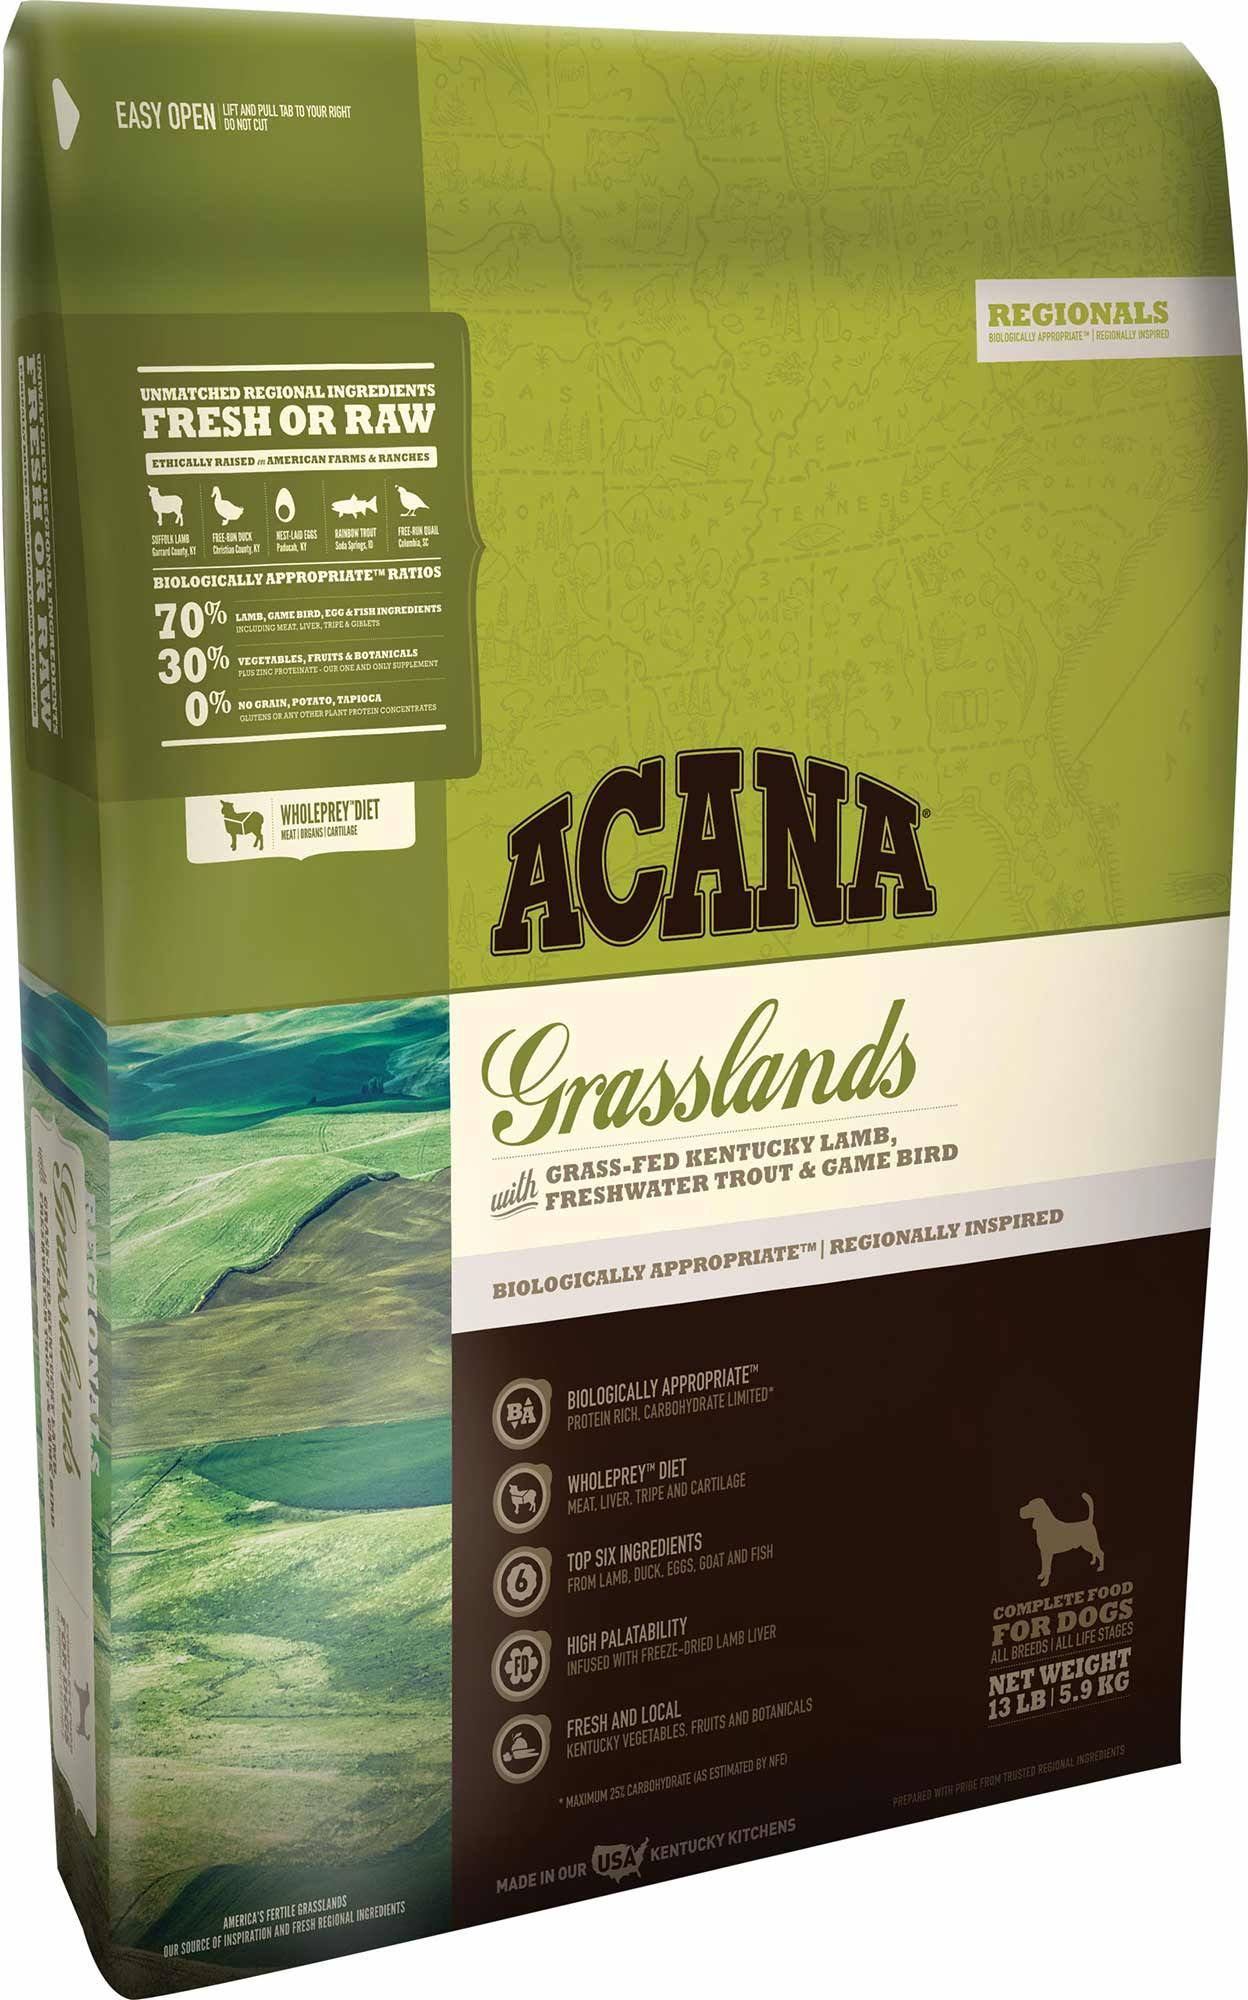 Acana Regionals Grasslands Dog Food - Dry, 13lb